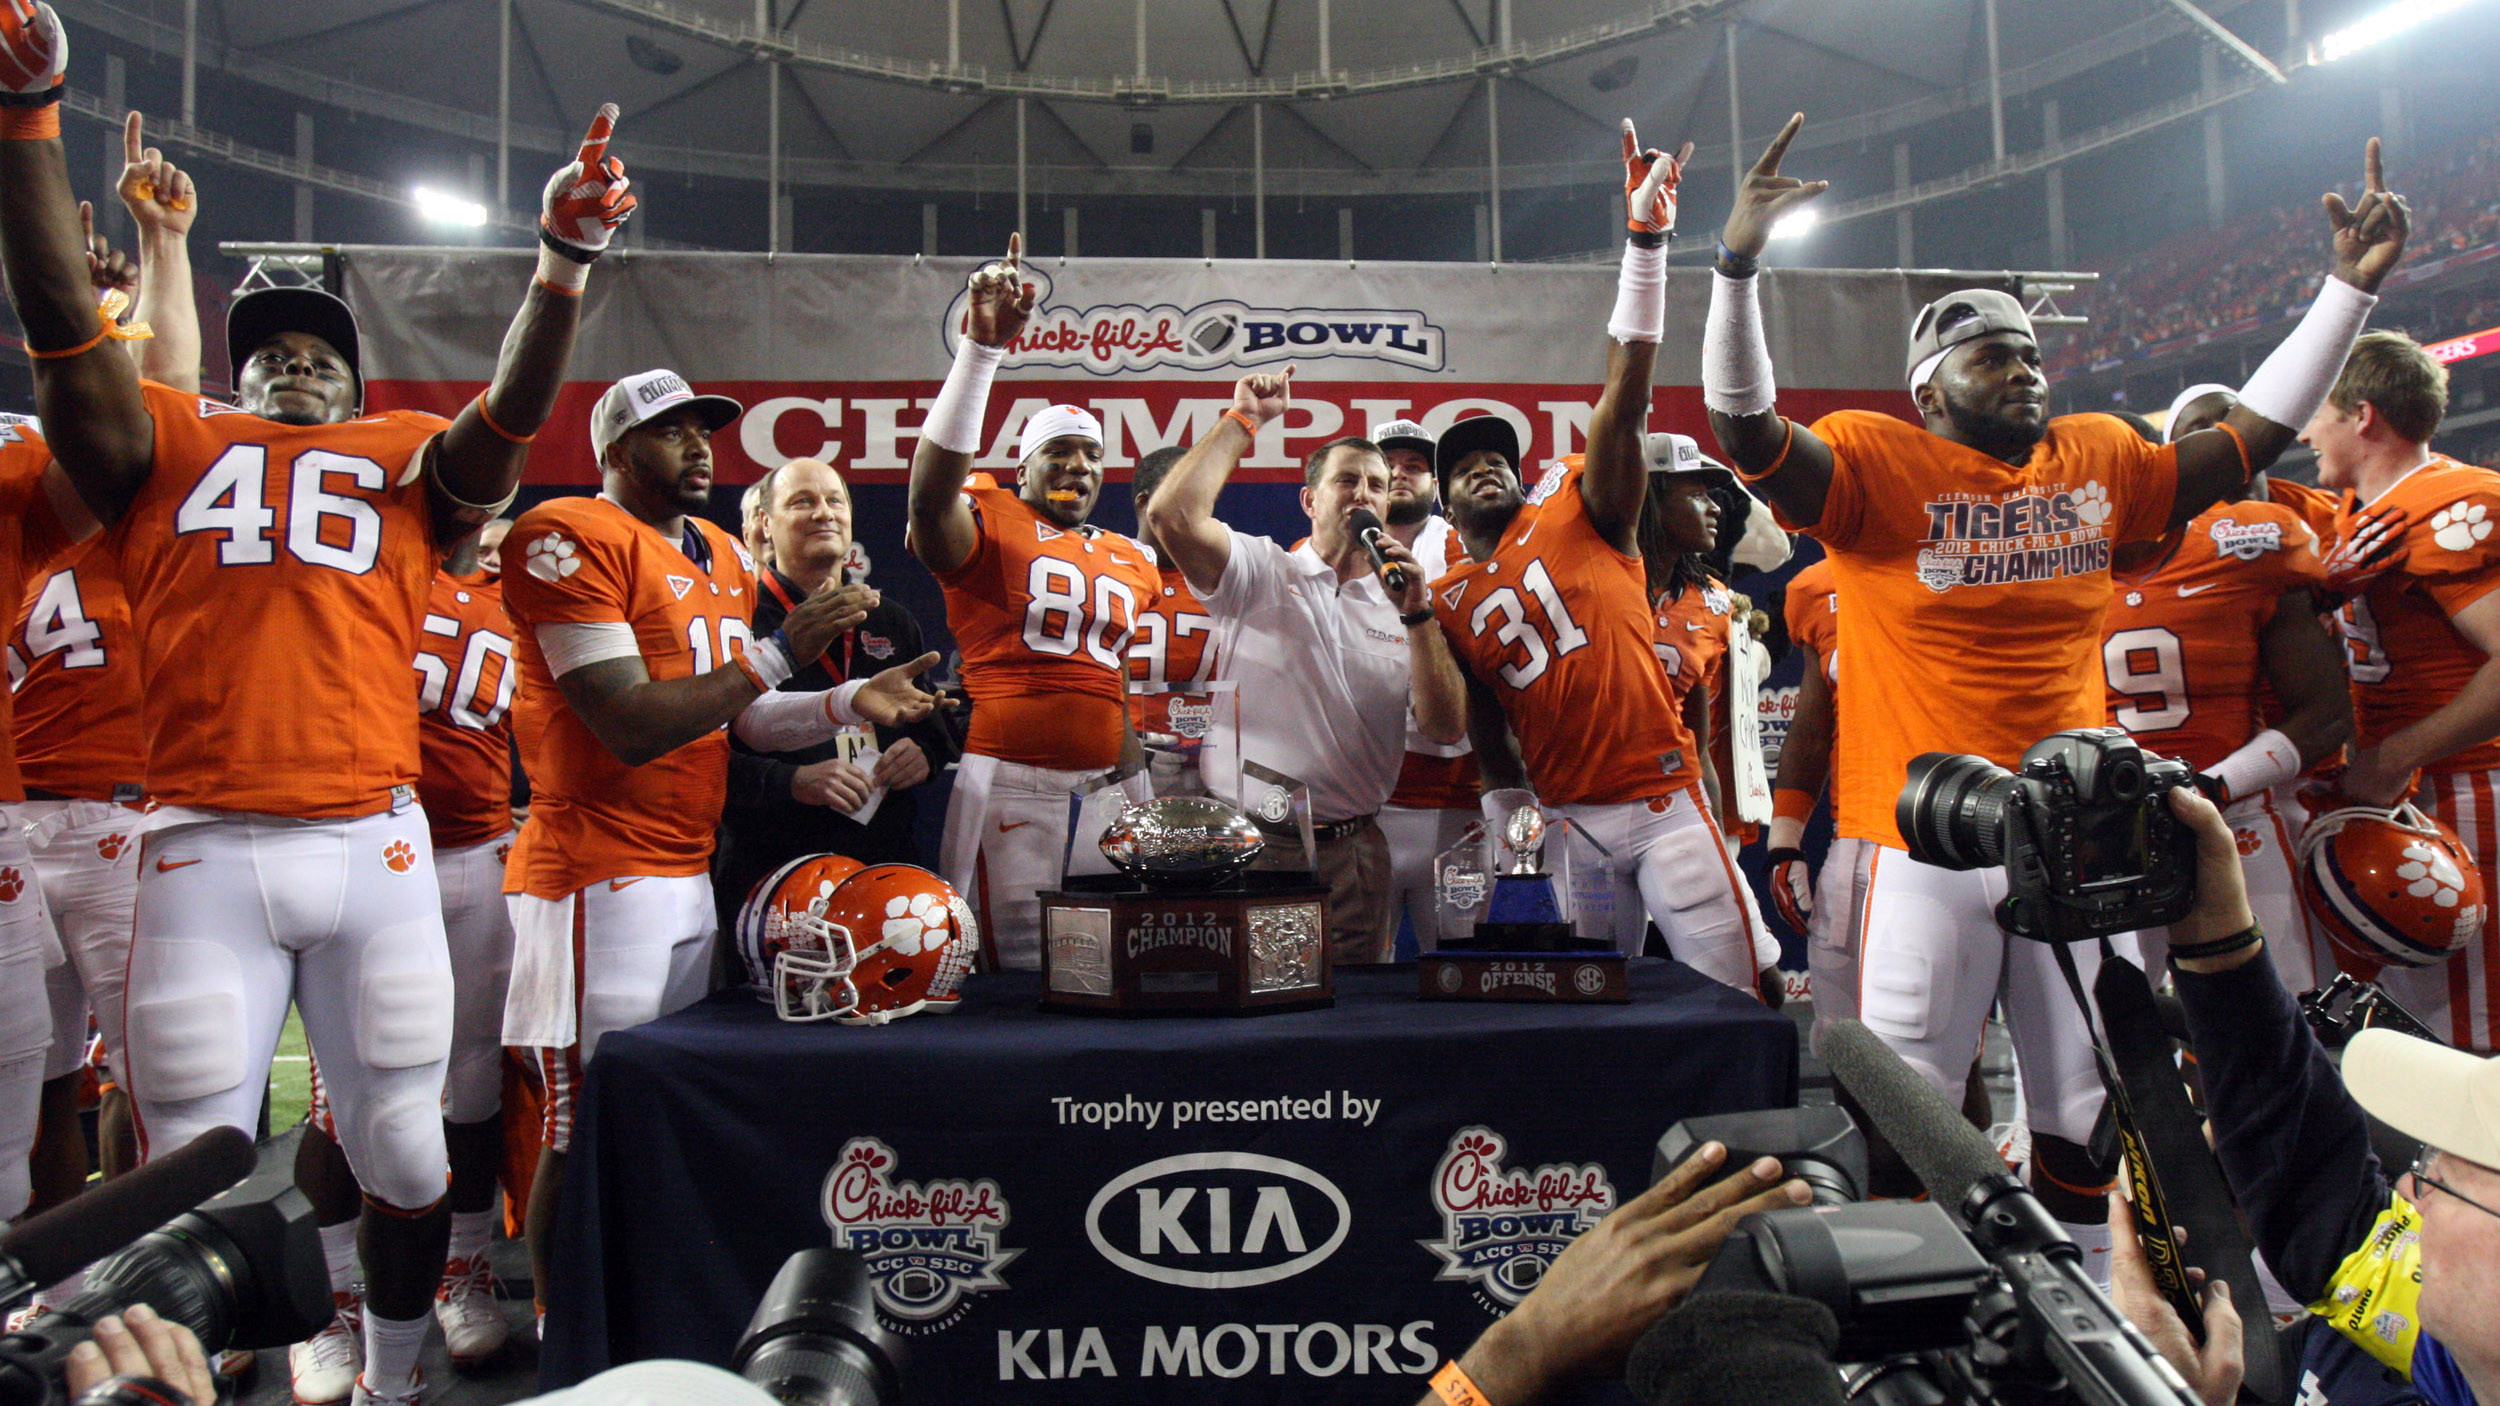 Clemson 25, LSU 24: Inside the Numbers of a Landmark Clemson Victory